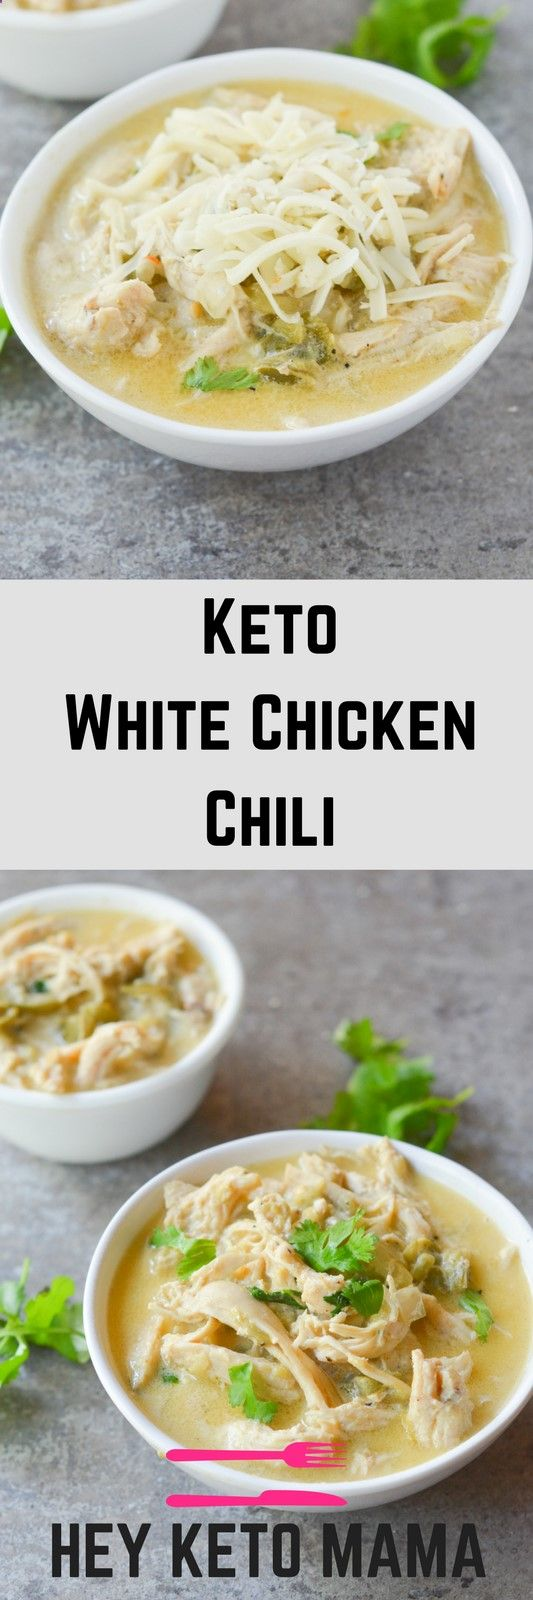 This Keto White Chicken Chili is an amazing comfort food for the changing seasons. It's filling, tasty and can easily be a crockpot/freezer meal! | heyketomama.com via Hey Keto Mama